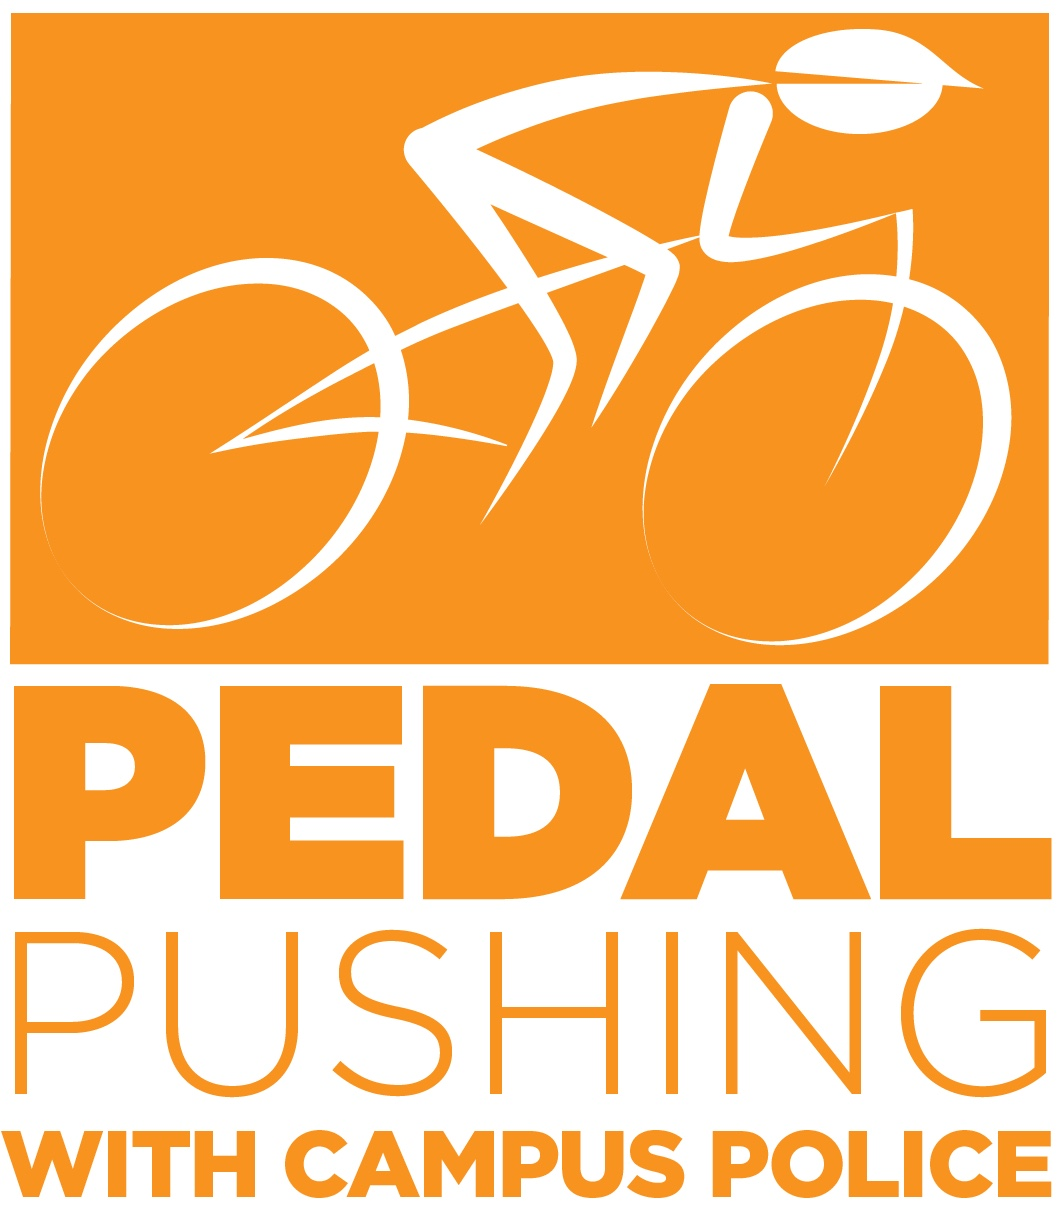 Pedal Pushing logo of bike rider.